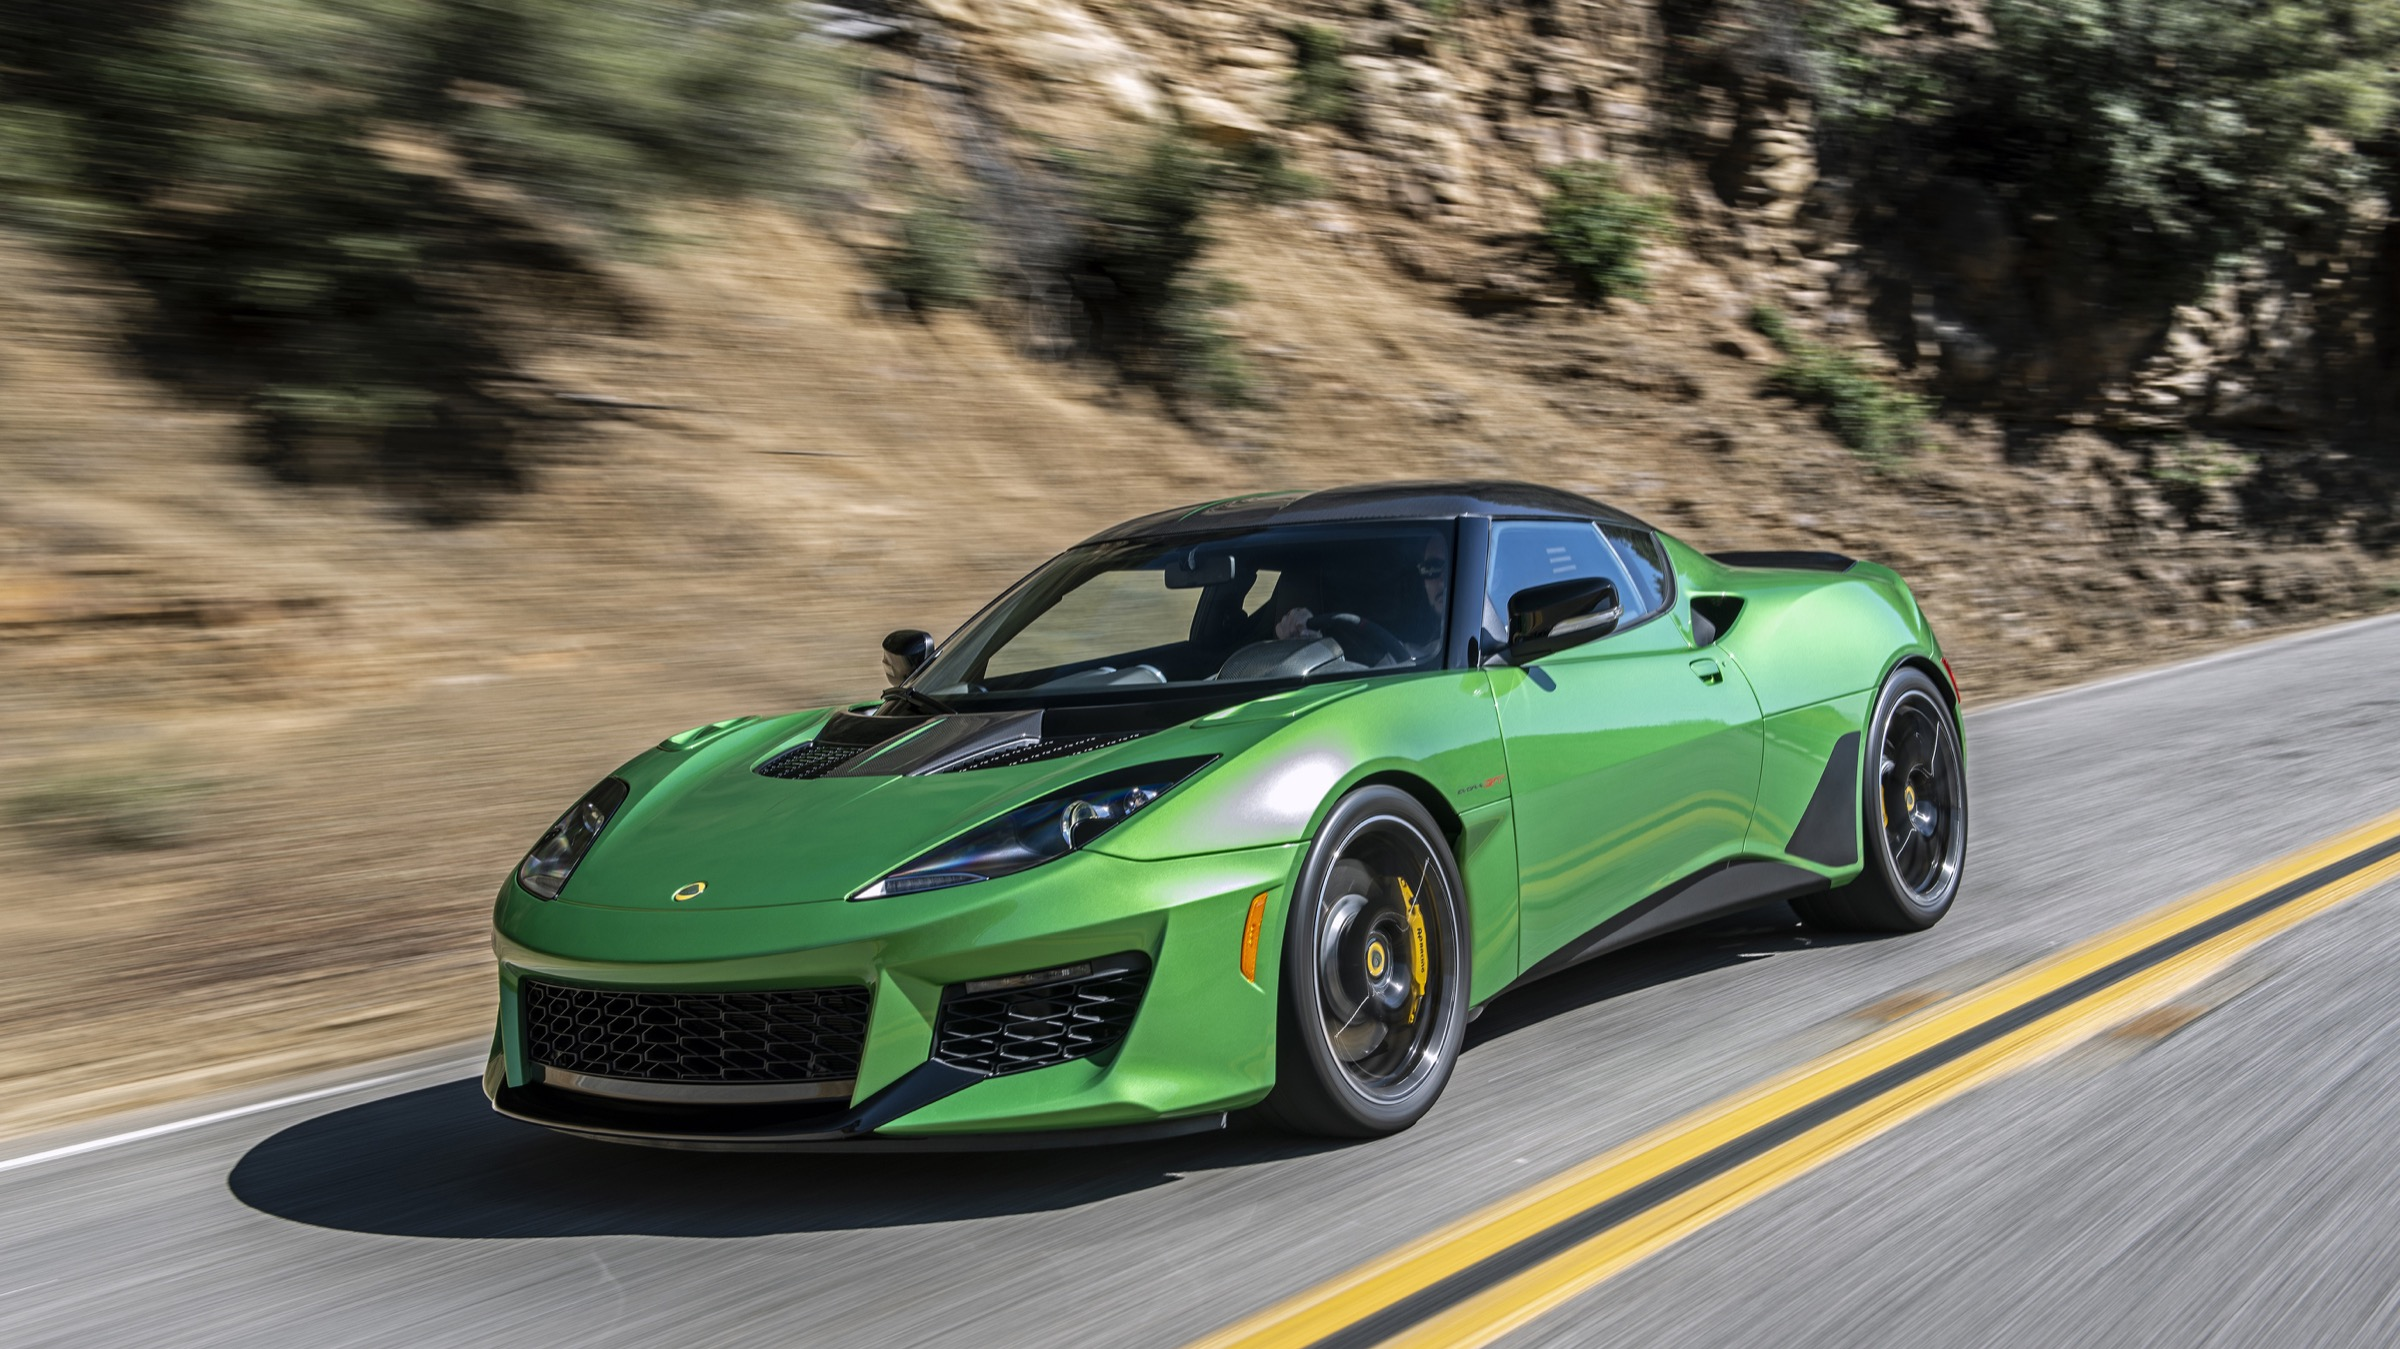 2020 Lotus Evora Release Date and Concept